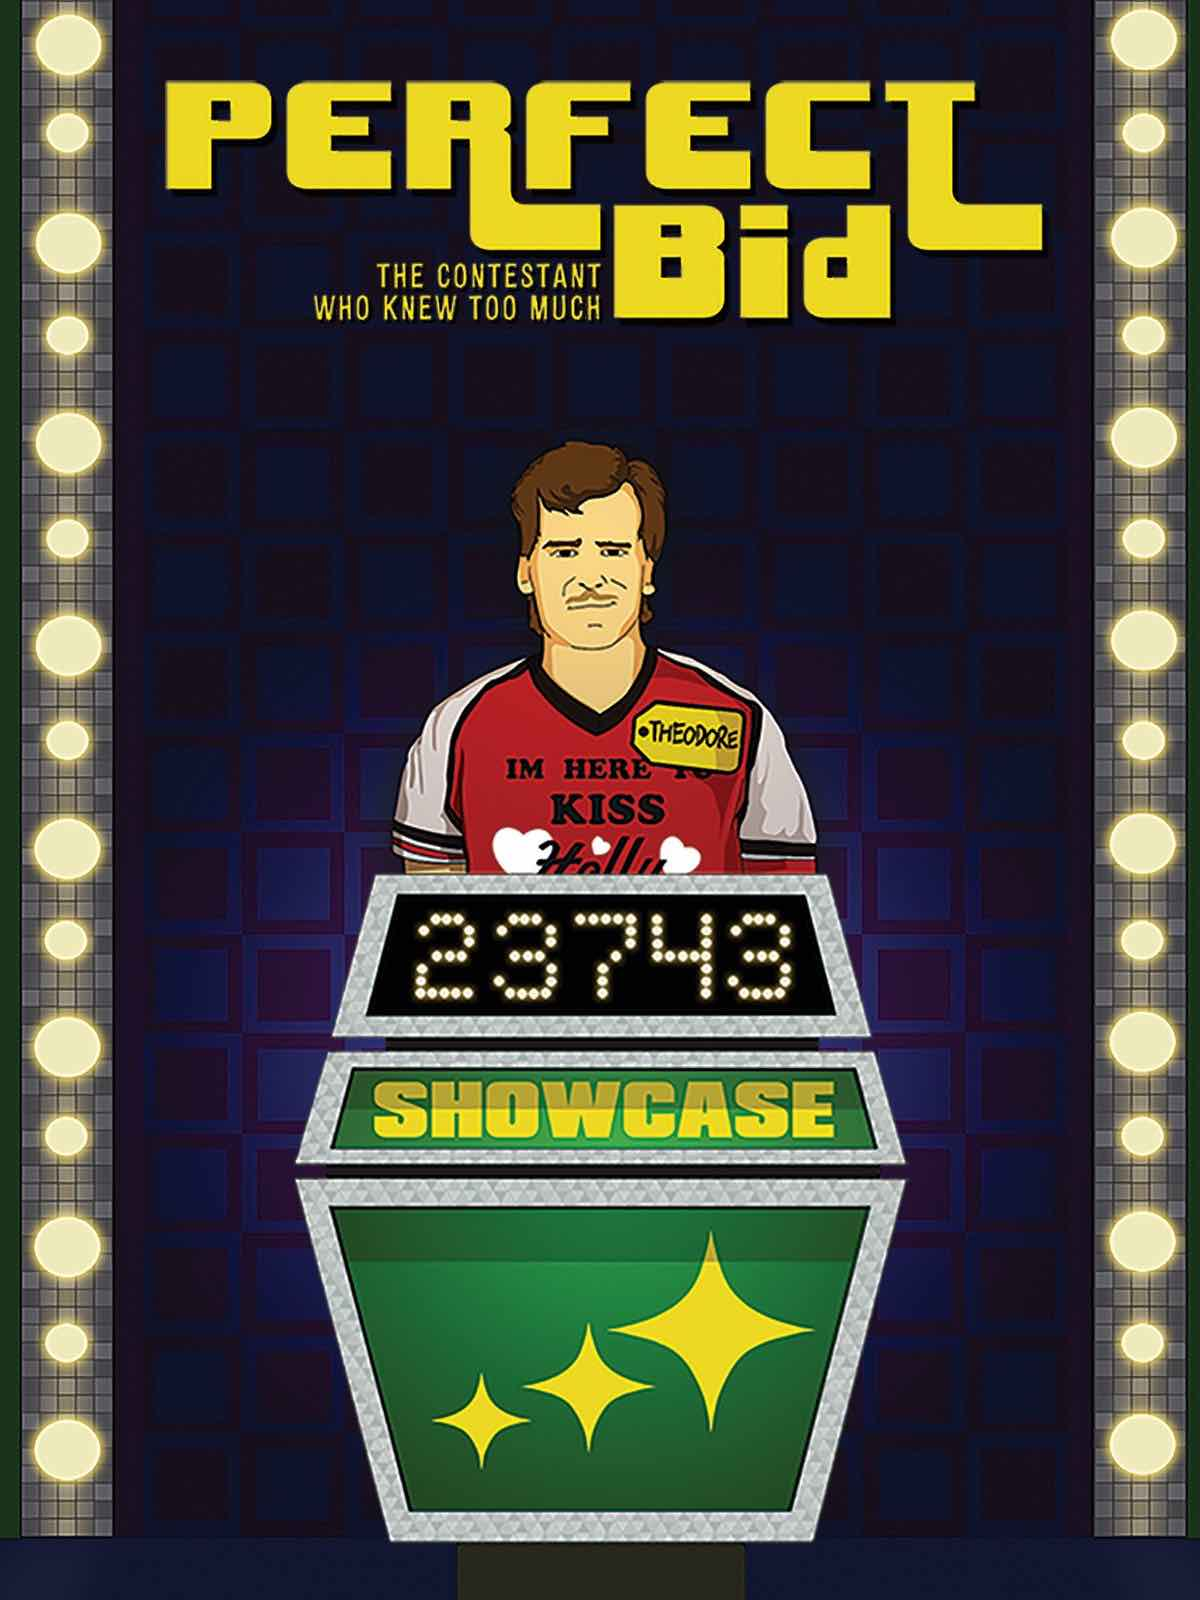 The award-winning documentary 'Perfect Bid: The Contestant Who Knew Too Much' about 'The Price is Right' superfan Ted Slauson is now streaming on Netflix.